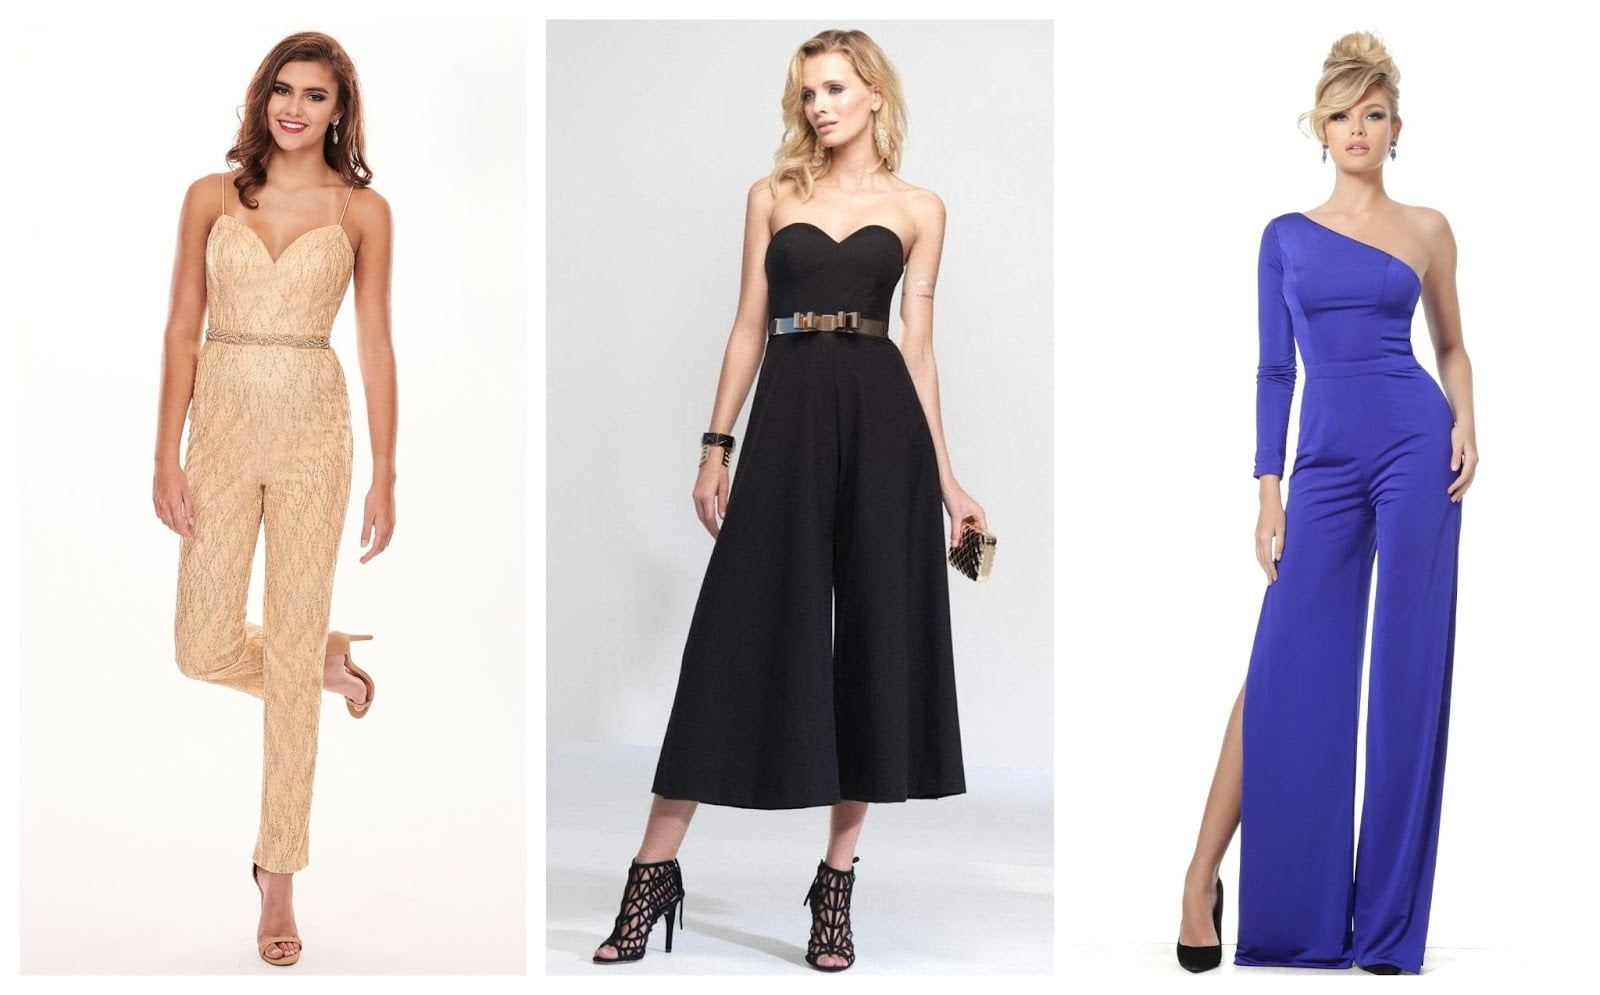 3 Best Tips And Ideas To Wear Dressy Pantsuits To Your Next Party